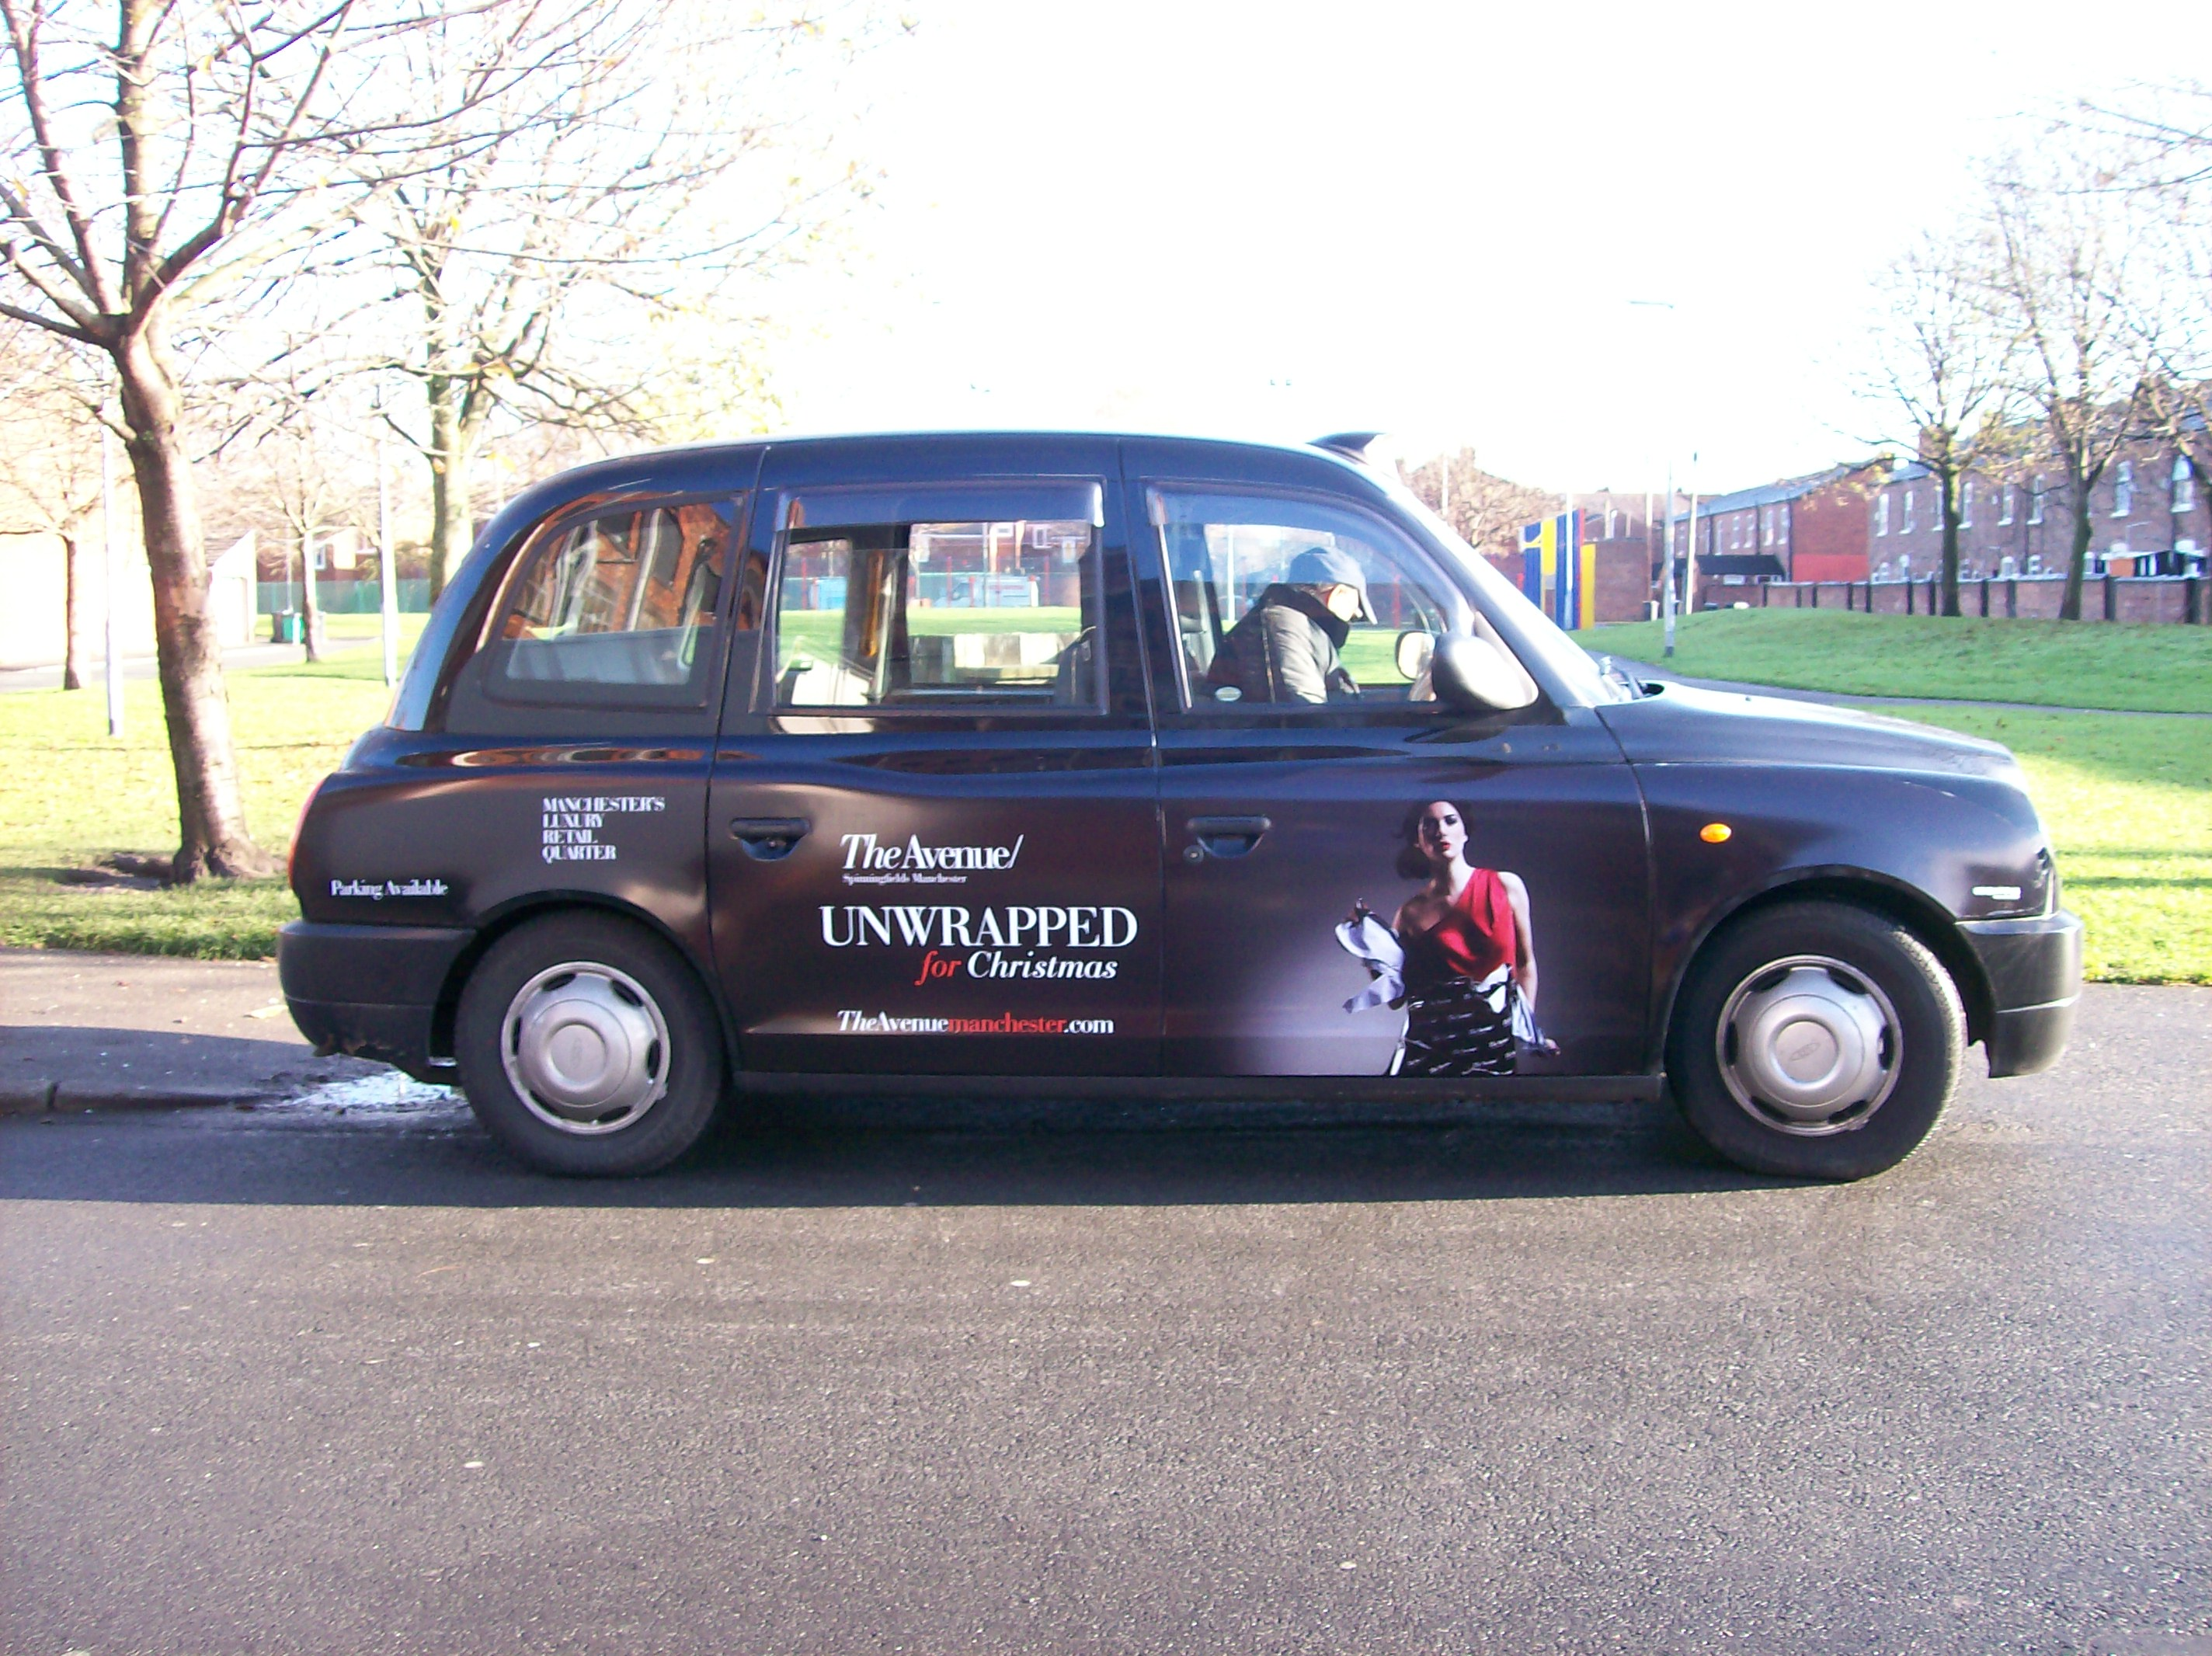 2010 Ubiquitous taxi advertising campaign for Spinningfields - The Avenue-Unwrapped For Christmas